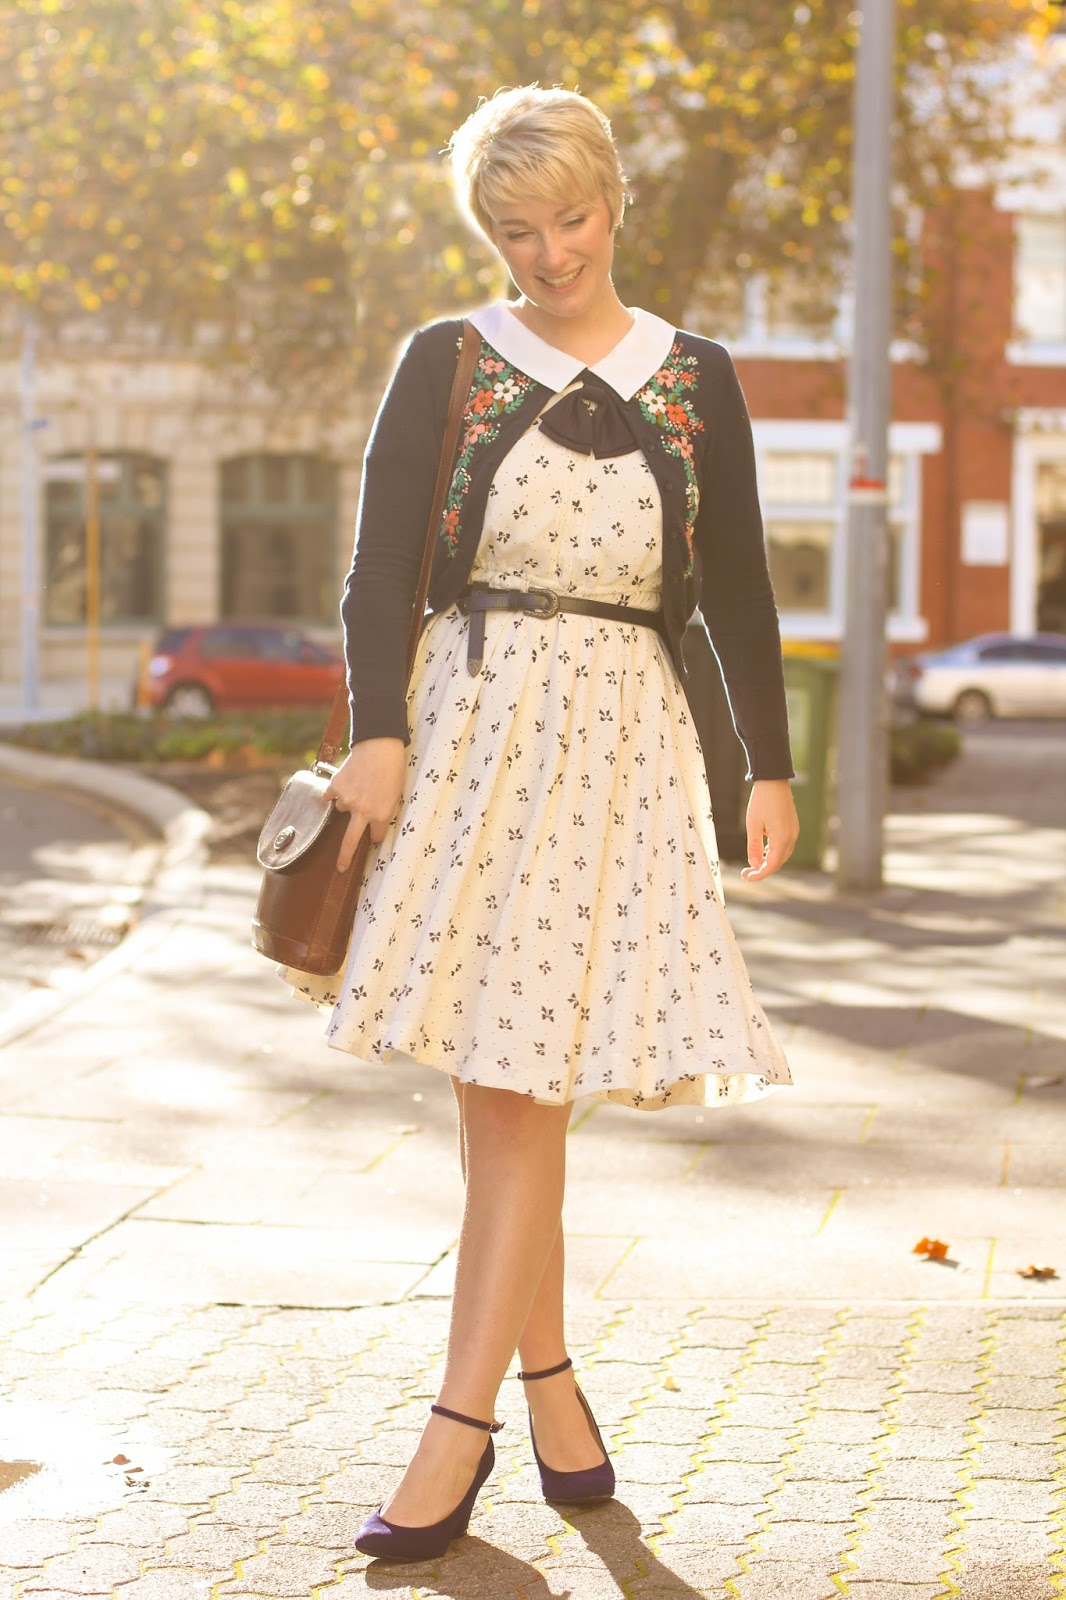 Liana of Finding Femme in Fremantle WA wearing vintage chelsea collar dress, nave embroidered cardigan, Modcloth blue suede wedge heels and Review Australia navy 'Willow' winter coat.